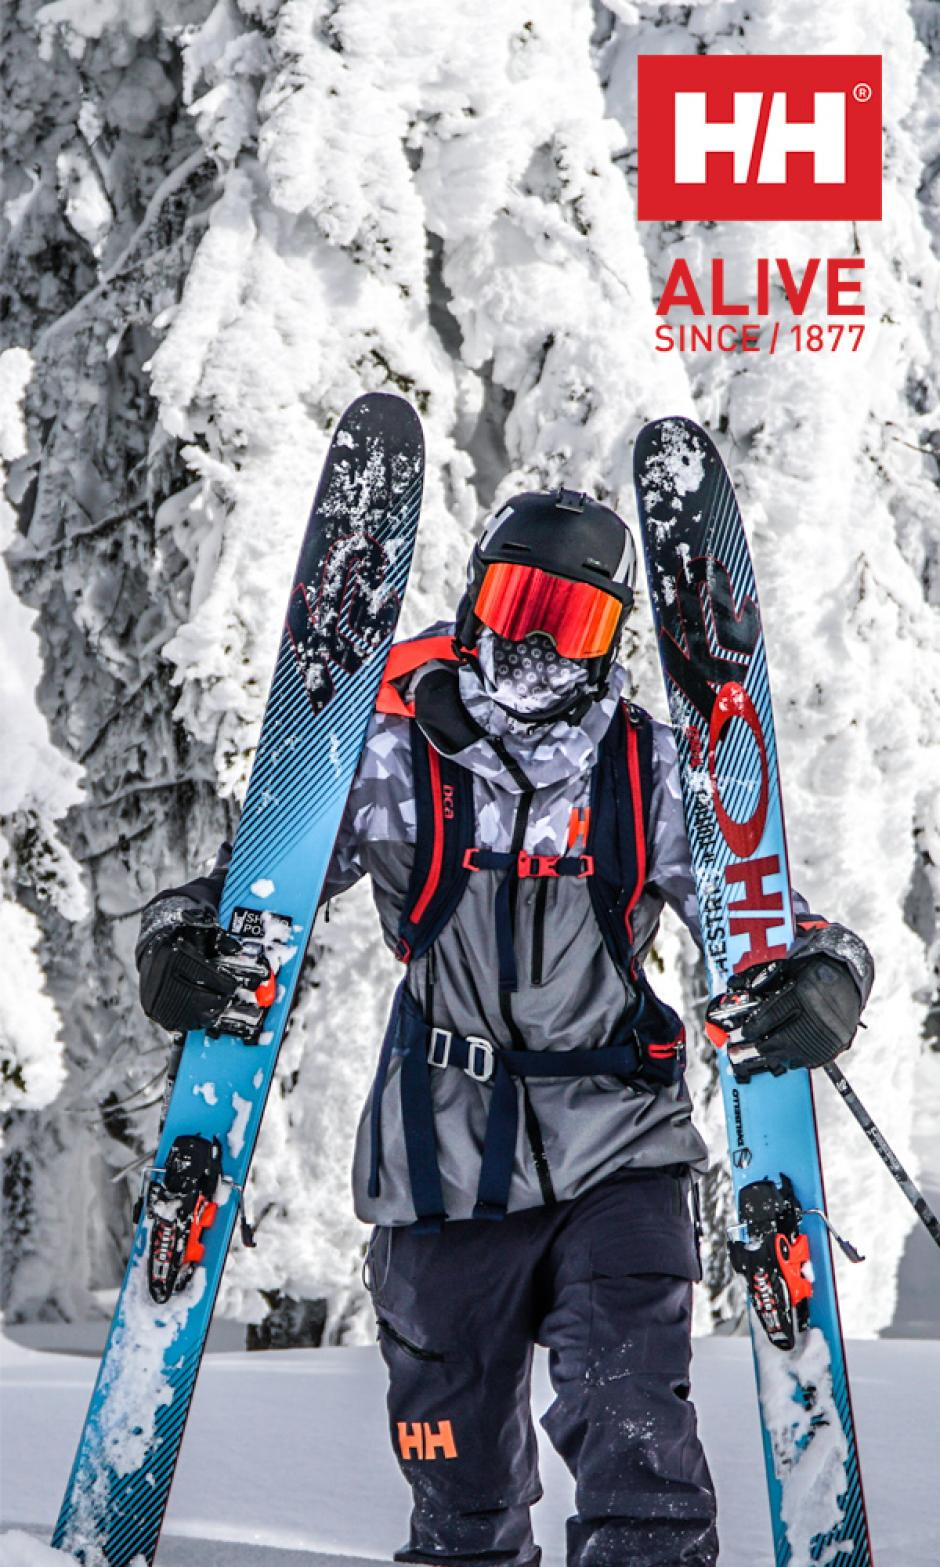 Simon Hillis – professional free skier. Image courtesy of Helly Hansen